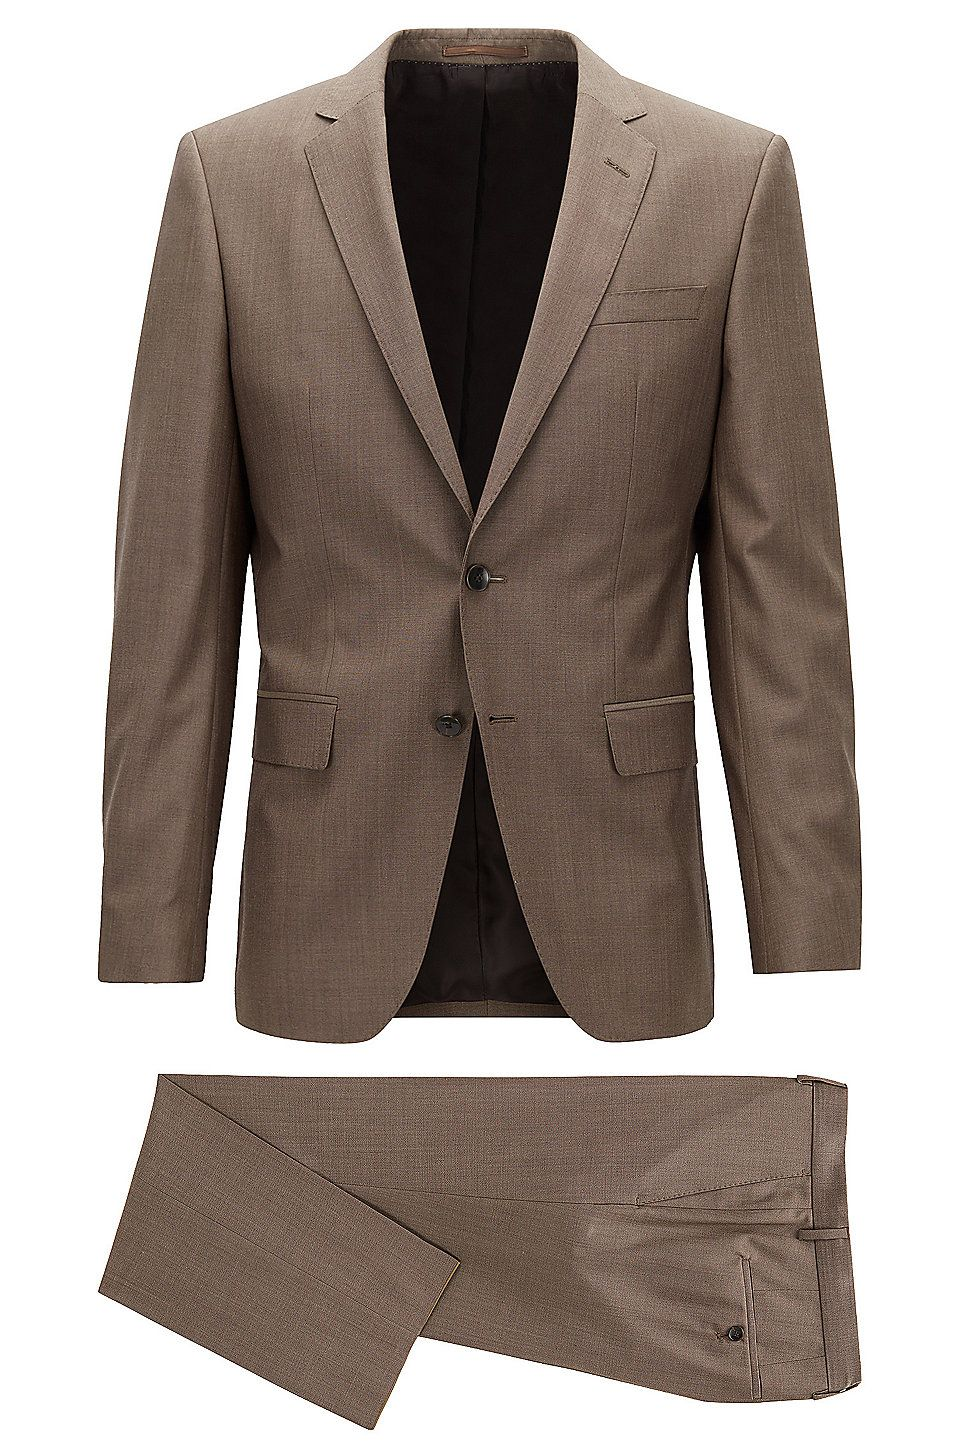 Italian Virgin Wool Suit, Slim Fit | Huge/Genius  Brown from BOSS for Men for $487.99 in the official HUGO BOSS Online Store free shipping